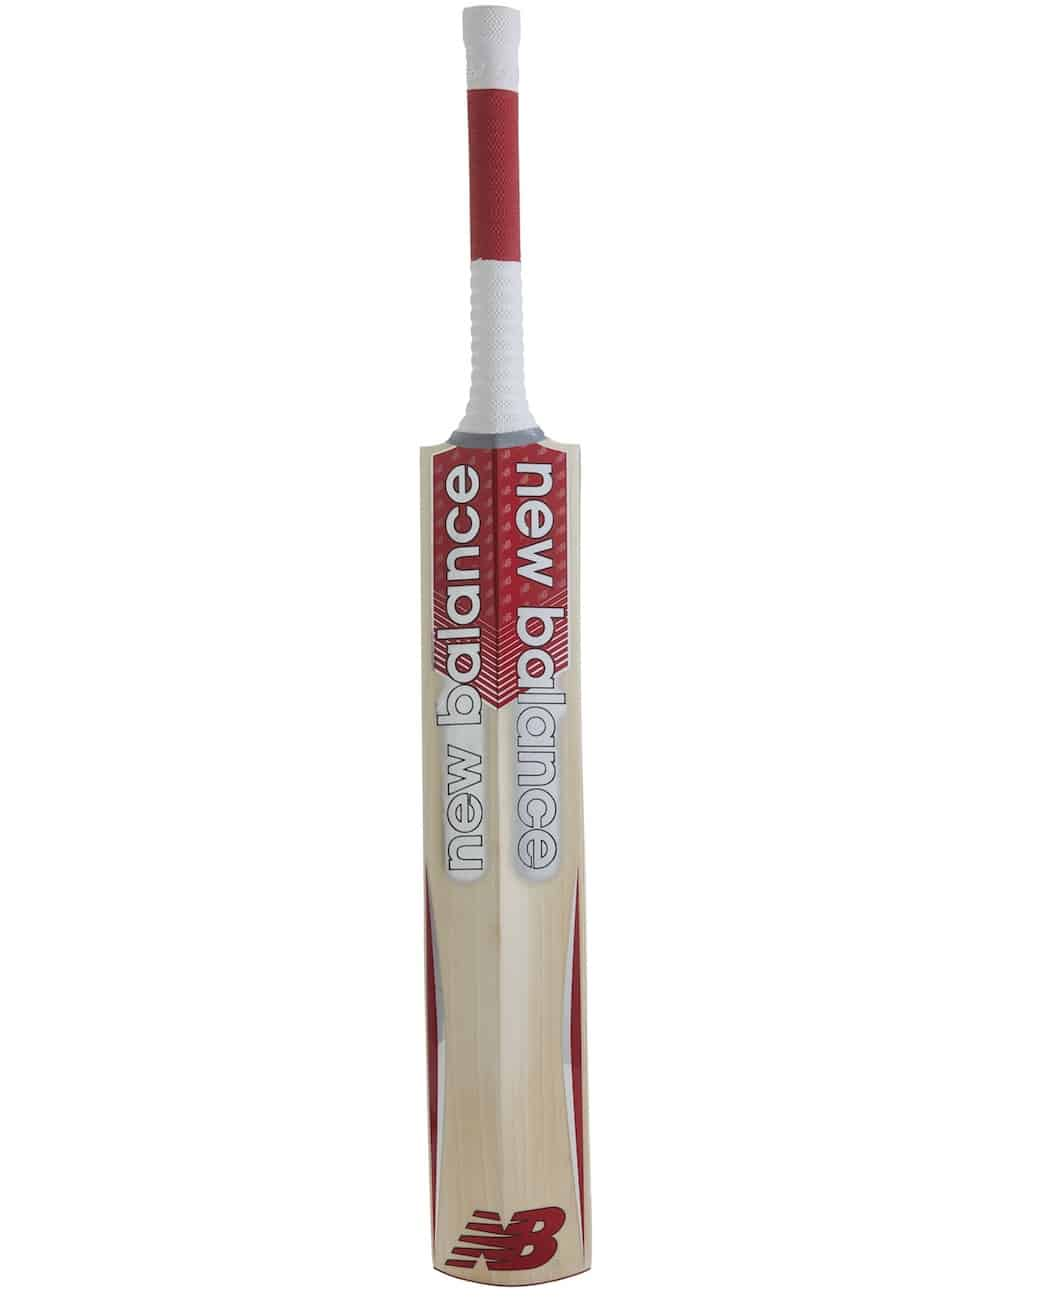 NB TC1260 cricket bat